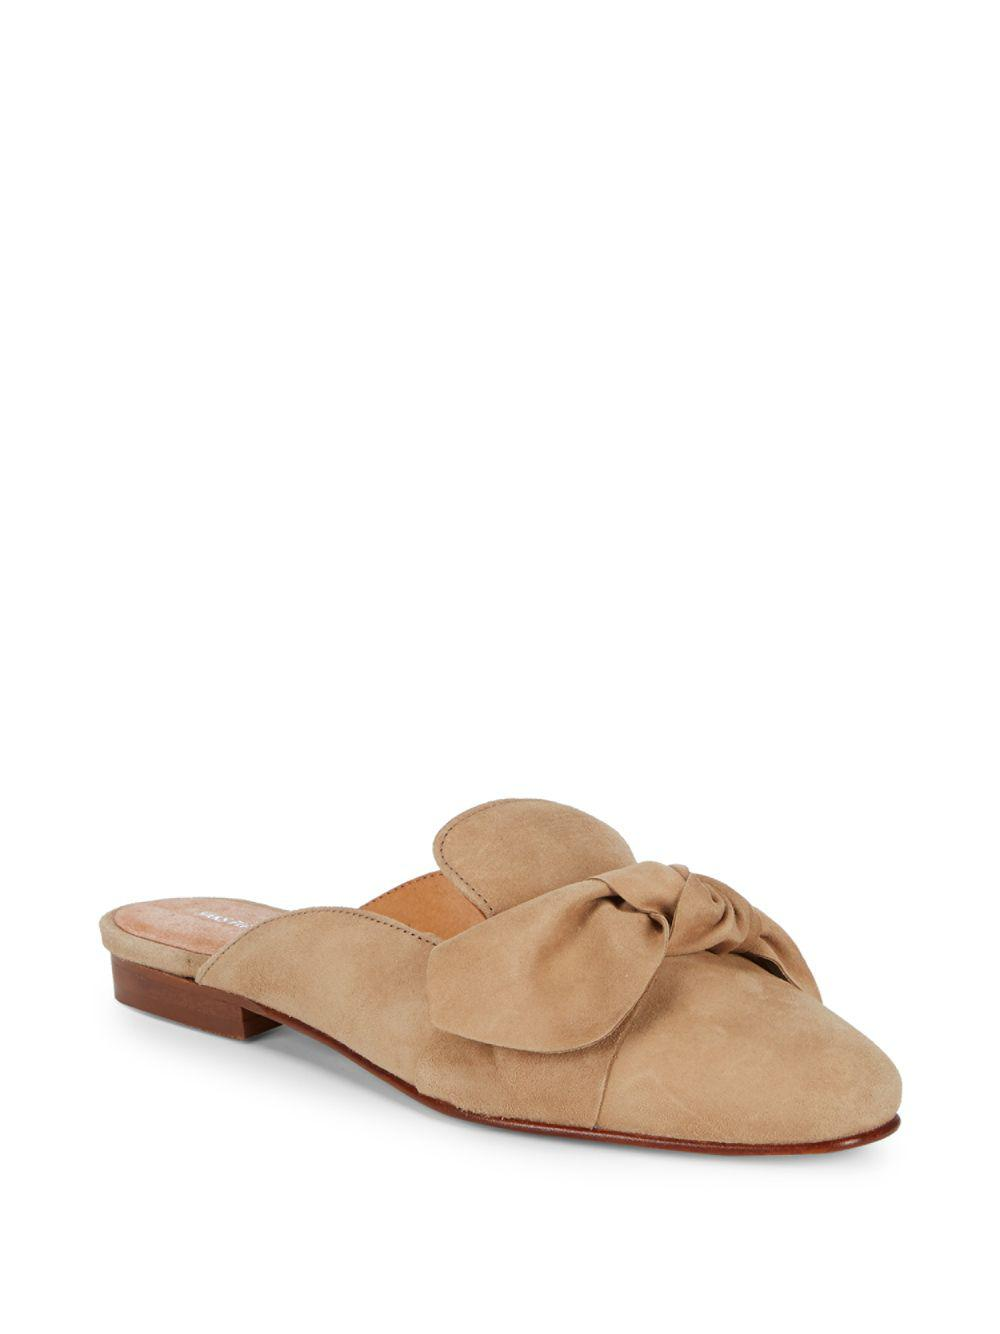 00d6bfb01c486f Lyst - Saks Fifth Avenue Bow Suede Mules in Brown